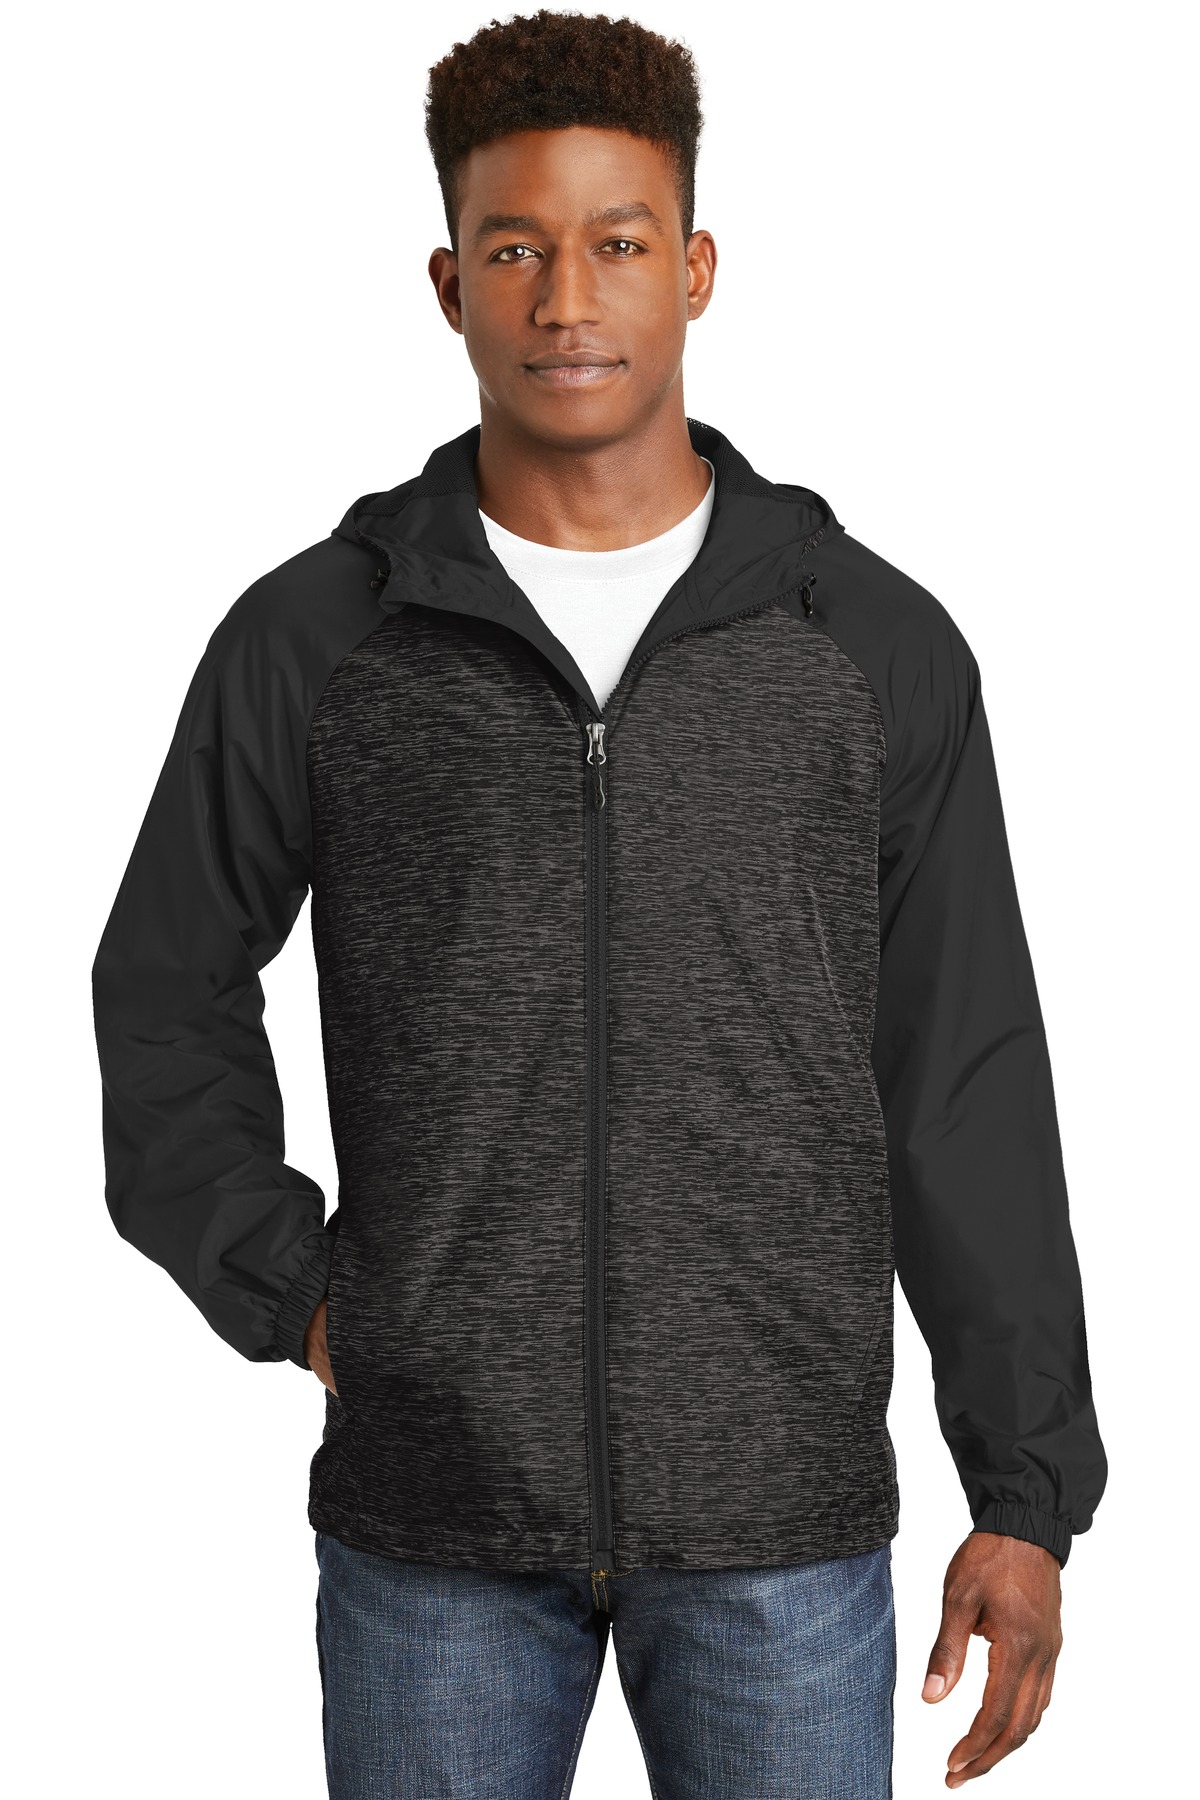 Sport-Tek ®  Heather Colorblock Raglan Hooded Wind Jacket. JST40 - Black Heather/ Black